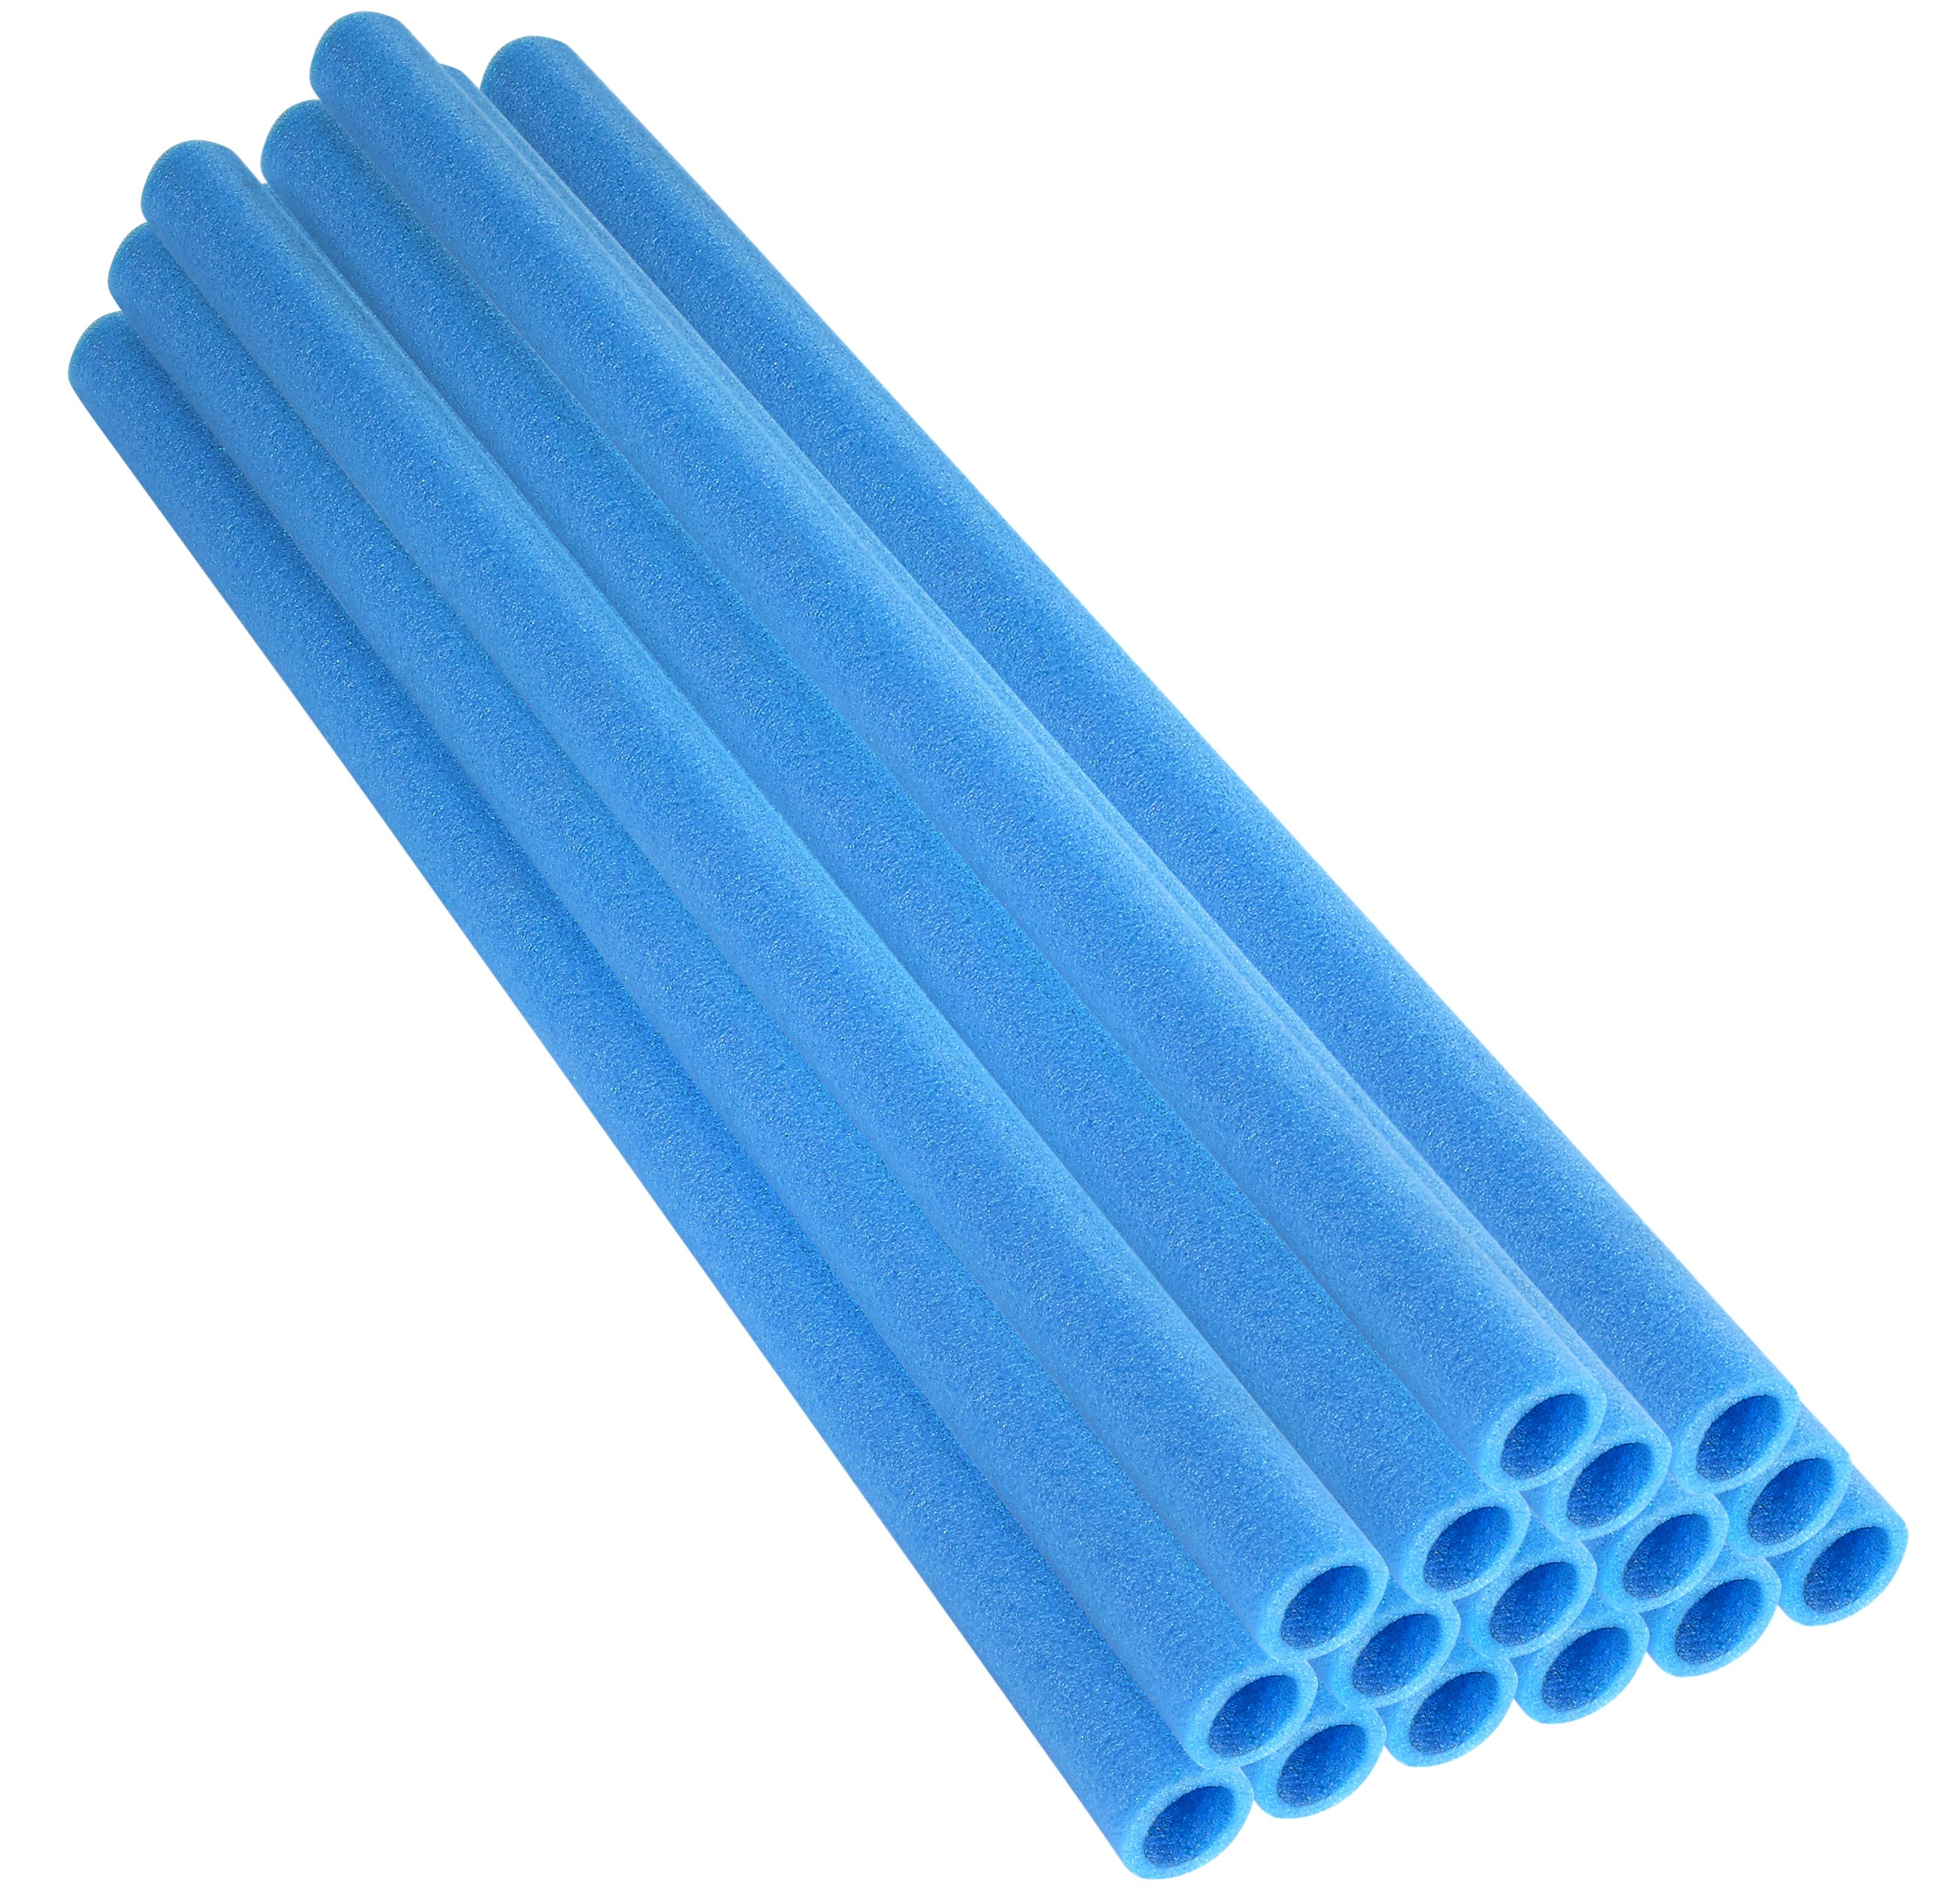 "33 Inch Trampoline Pole Foam Sleeves, fits for 1"" Diameter Pole - Set of 16 - Blue"